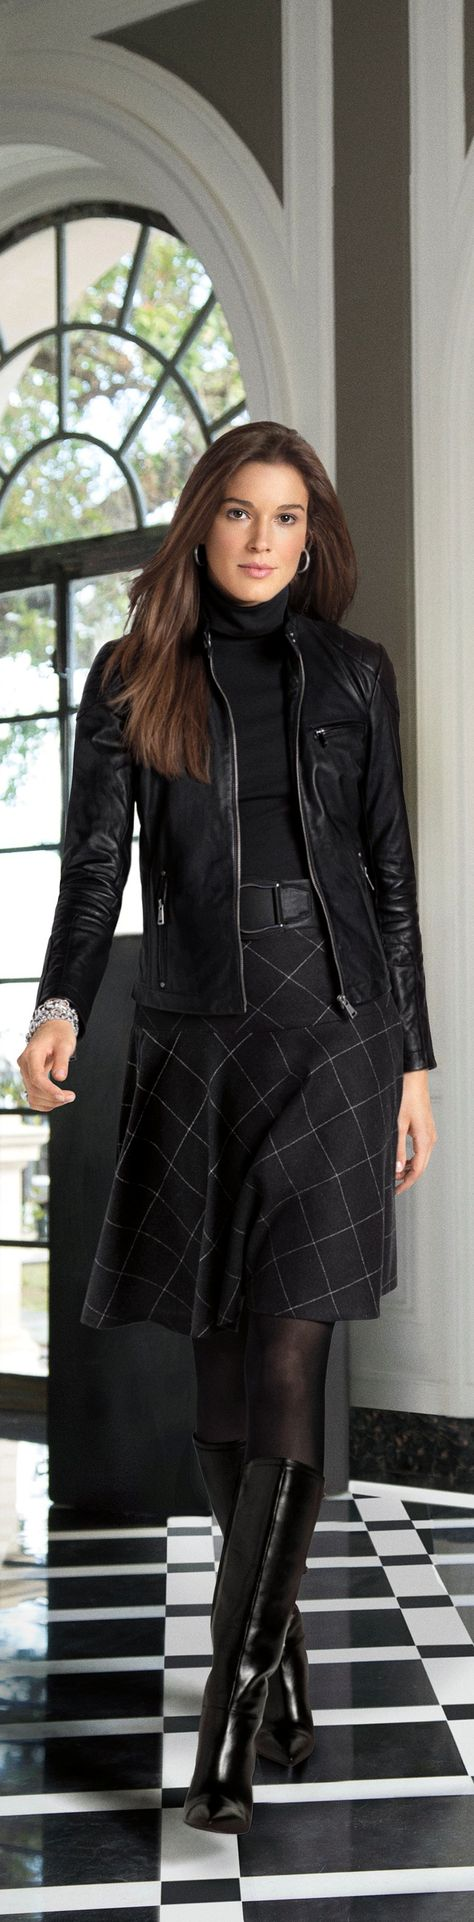 Update your look for fall with Lauren Ralph Lauren with sleek shades of black and grey